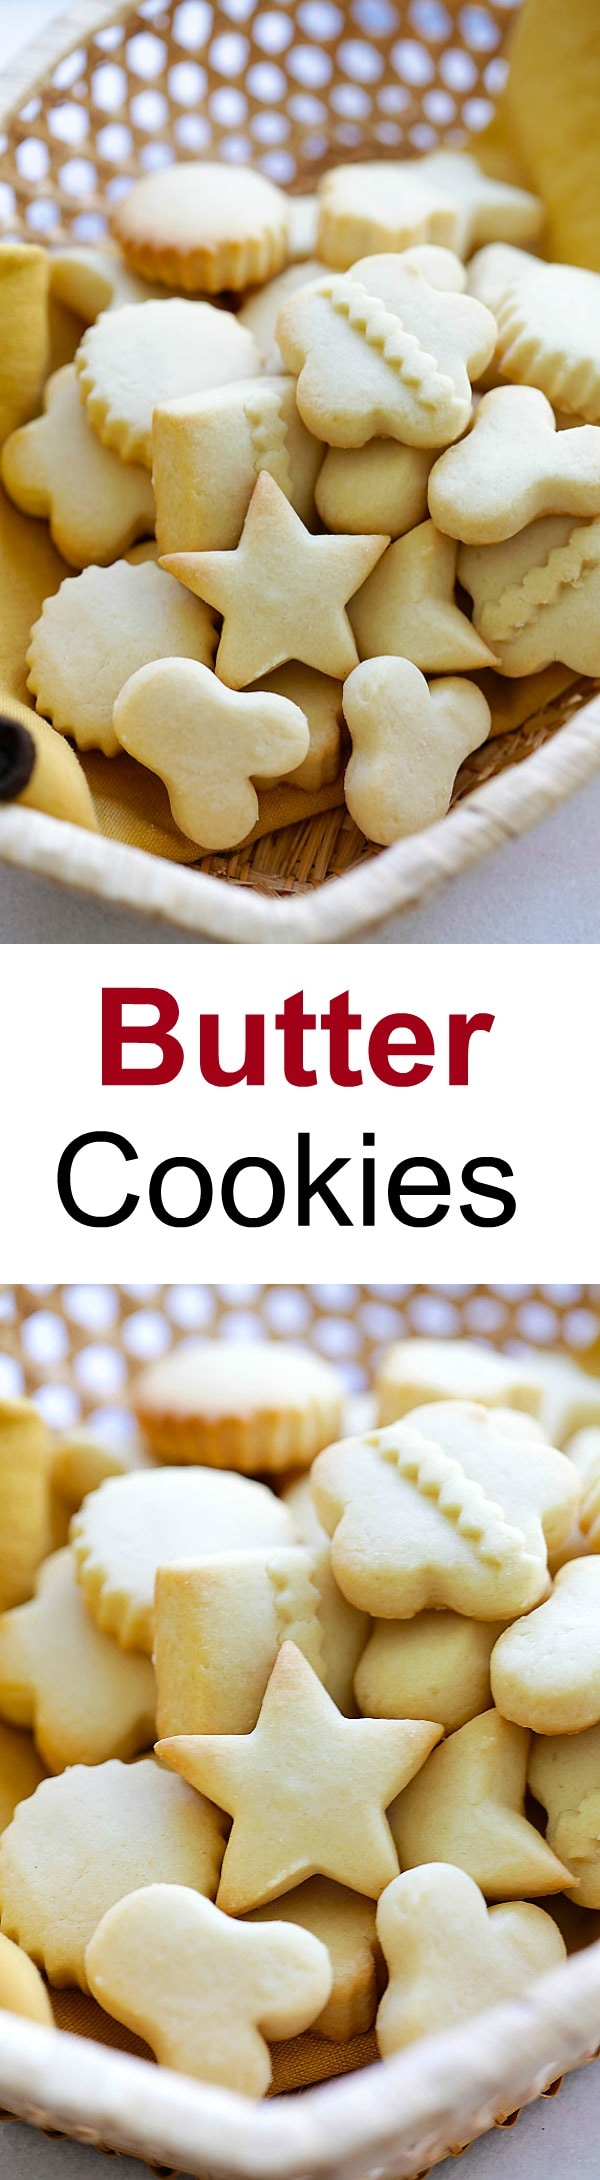 Butter Cookies - EASIEST & BEST butter cookies recipe ever! Loaded with butter, crumbly, melt-in-your-mouth deliciousness. Perfect cookies for holidays!